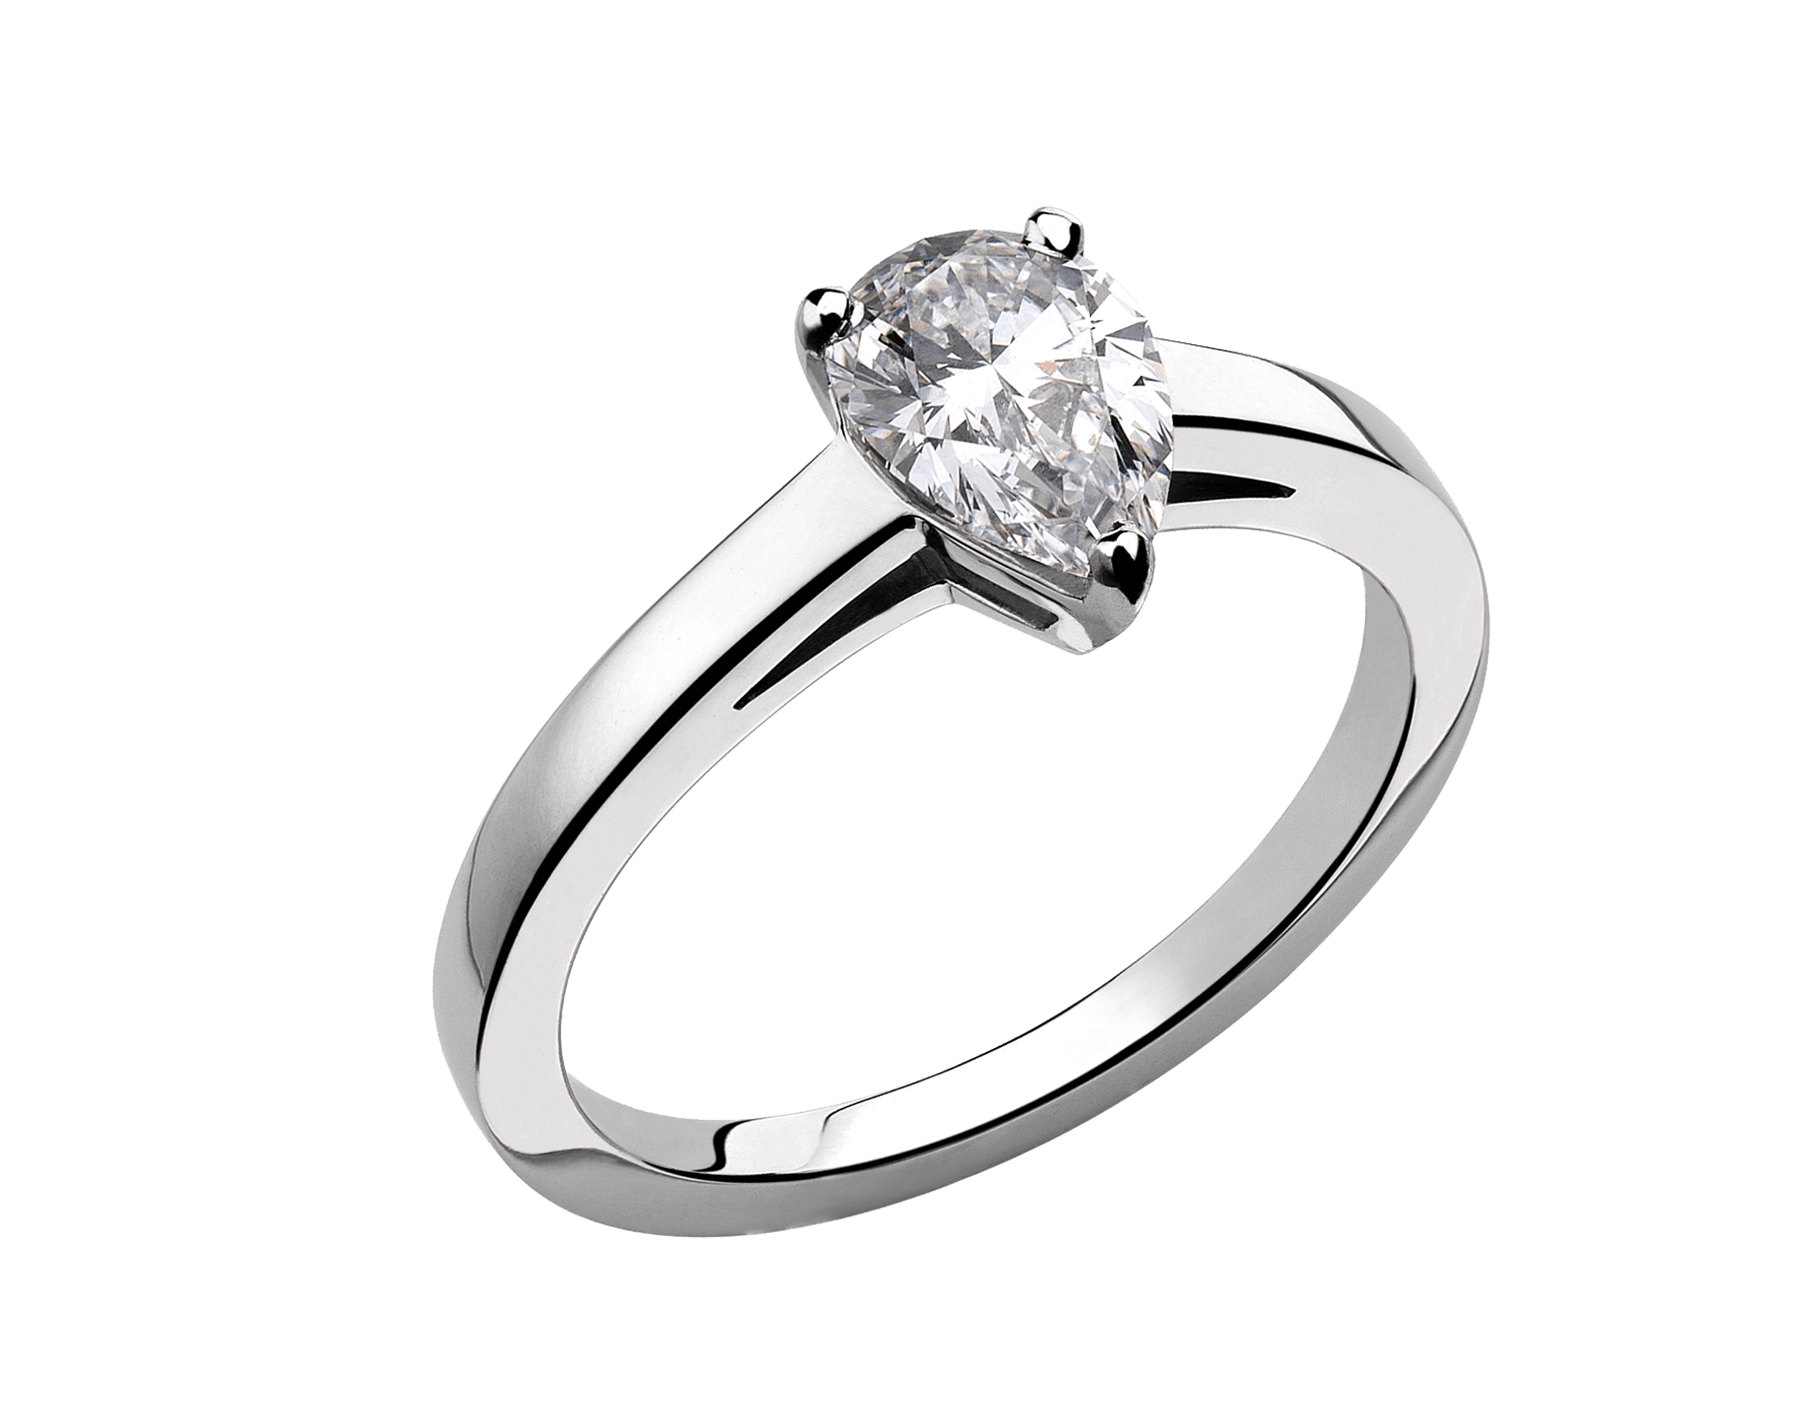 Griffe solitaire ring in platinum with pear cut diamond AN853569 image 1